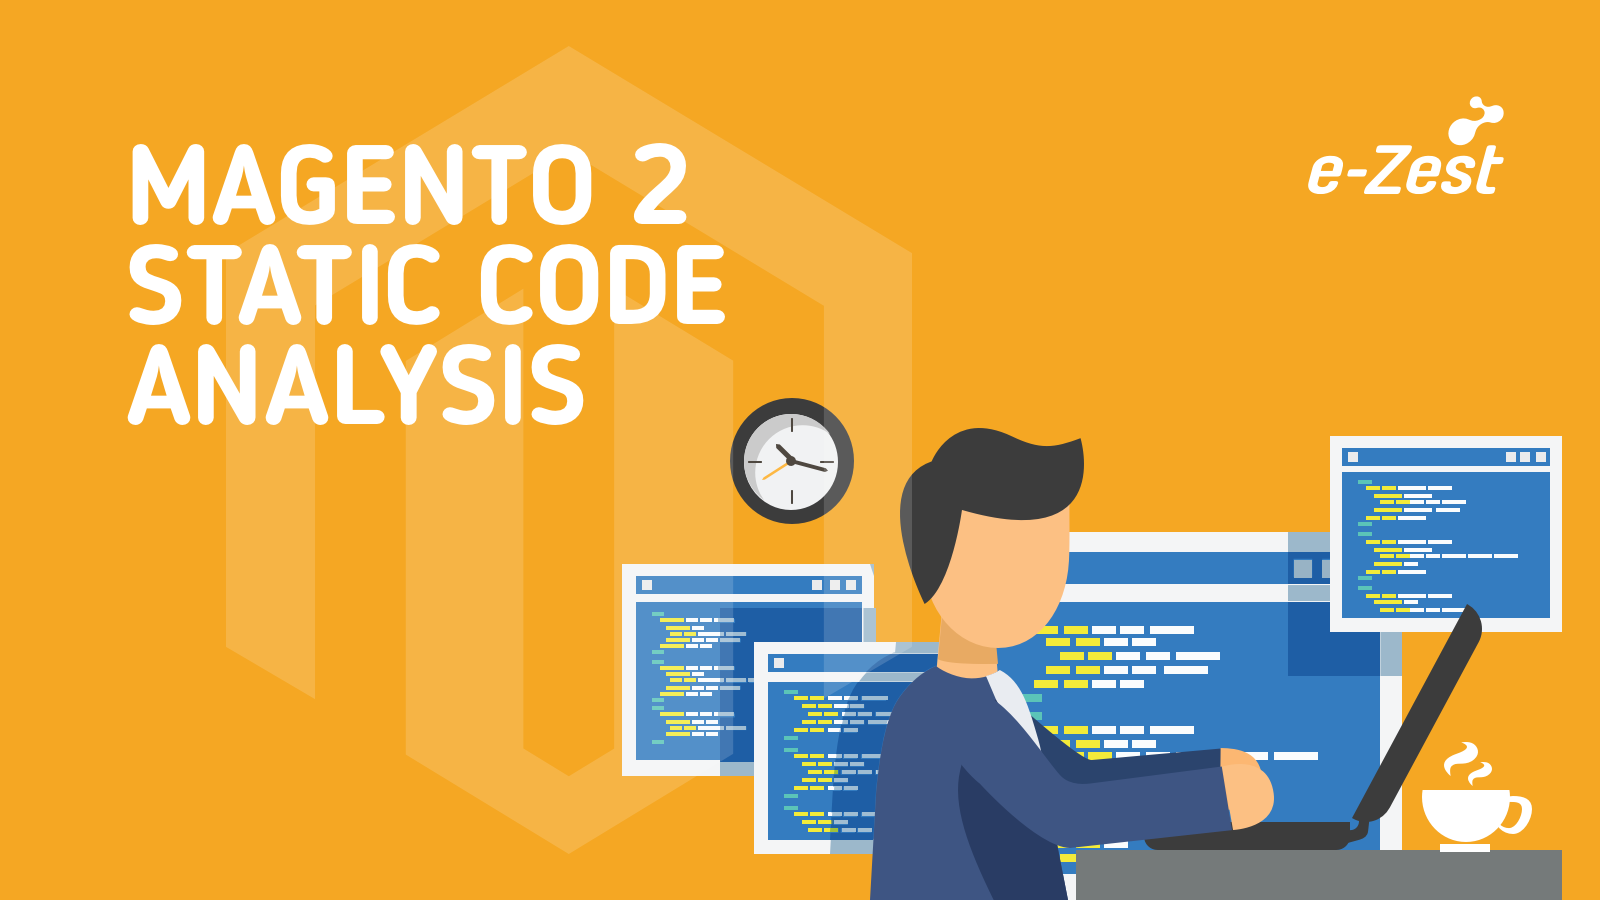 Magento 2 Static Code Analysis